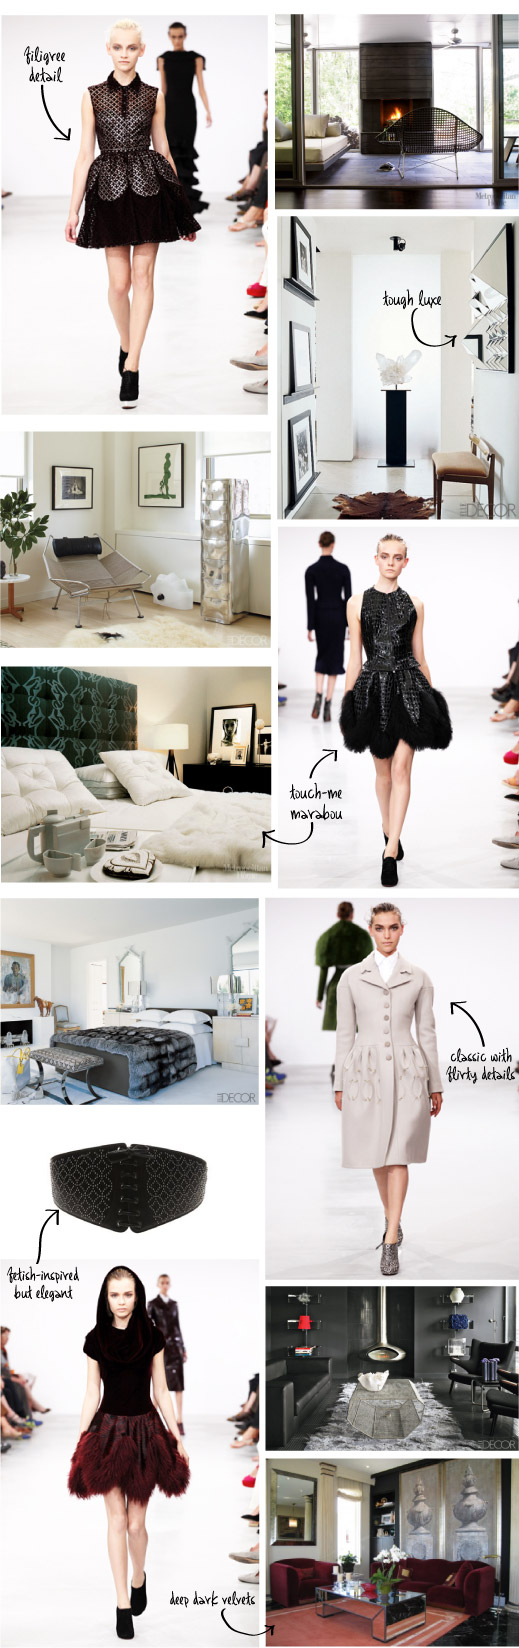 Outfit to Fitout - Dark Luxe fashion and interiors from The Unexpected Chic